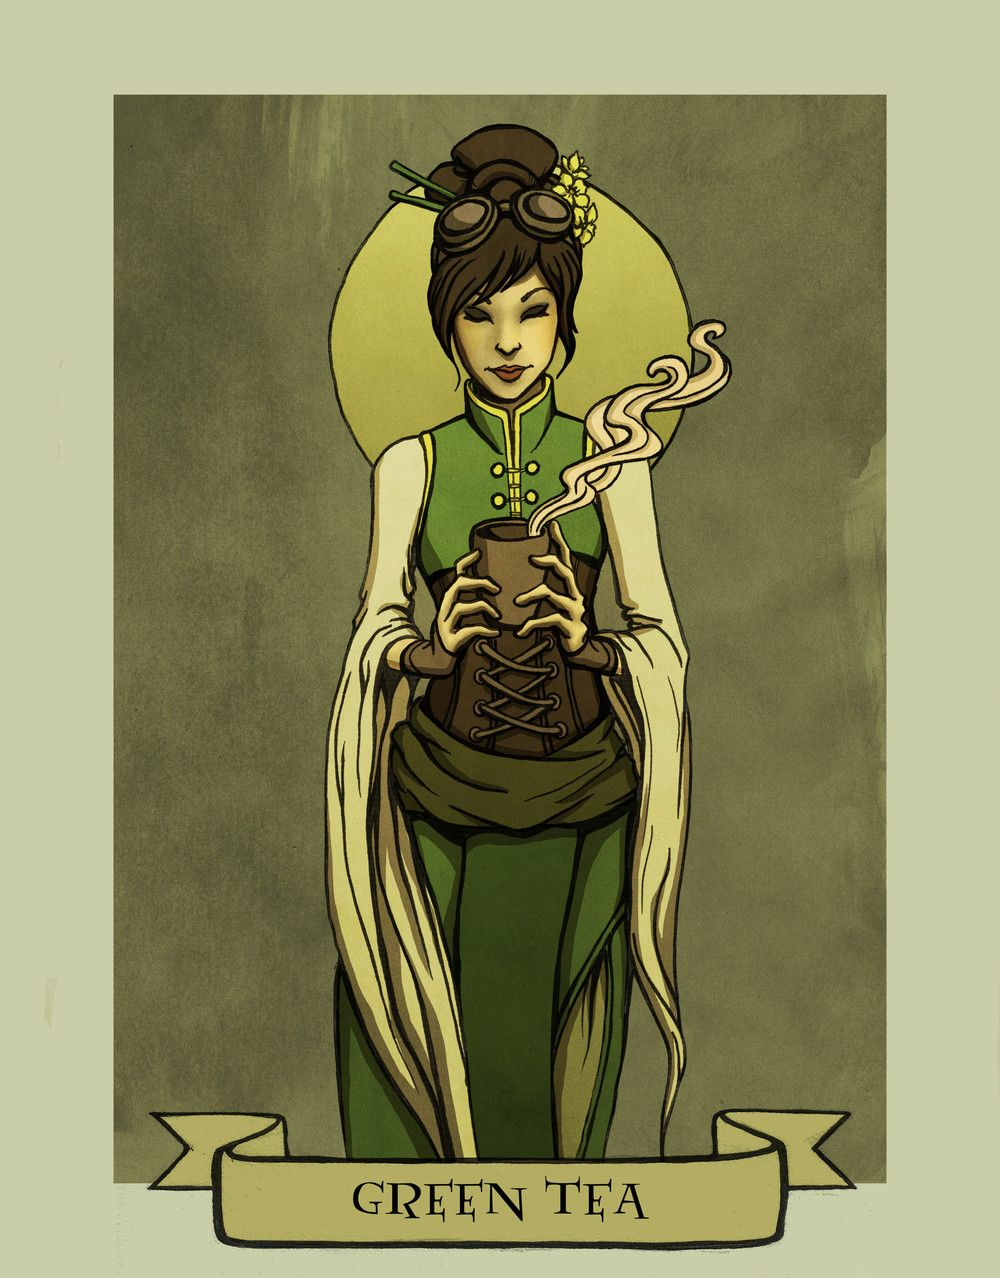 Green Tea Prints are here: http://www.inprnt.com/gallery/madalynmcleod/green-tea/